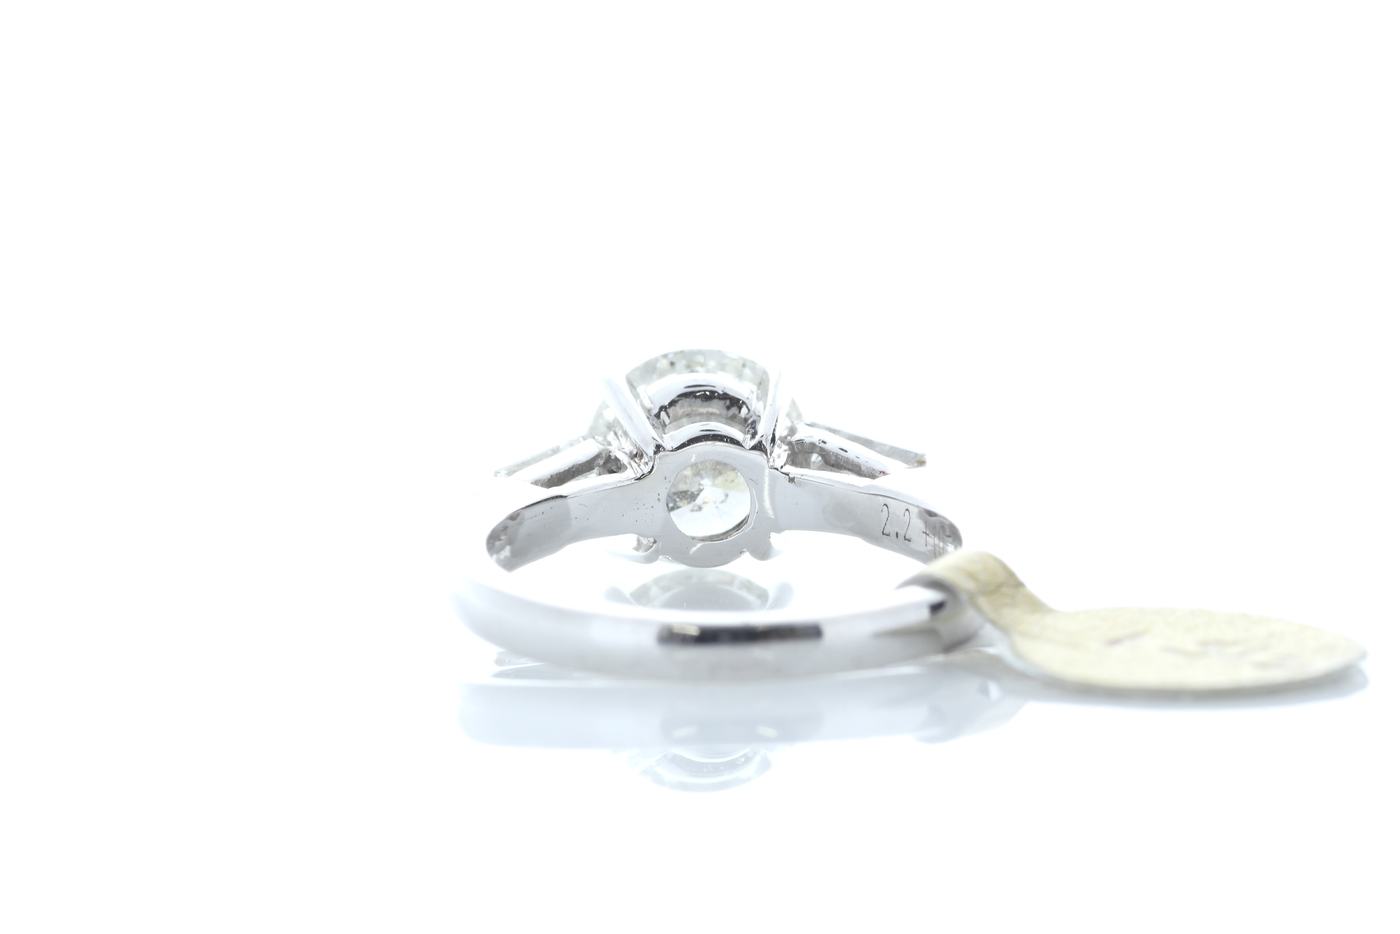 18ct White Gold Baguette Shoulders Diamond Ring 2.20 Carats - Image 3 of 5